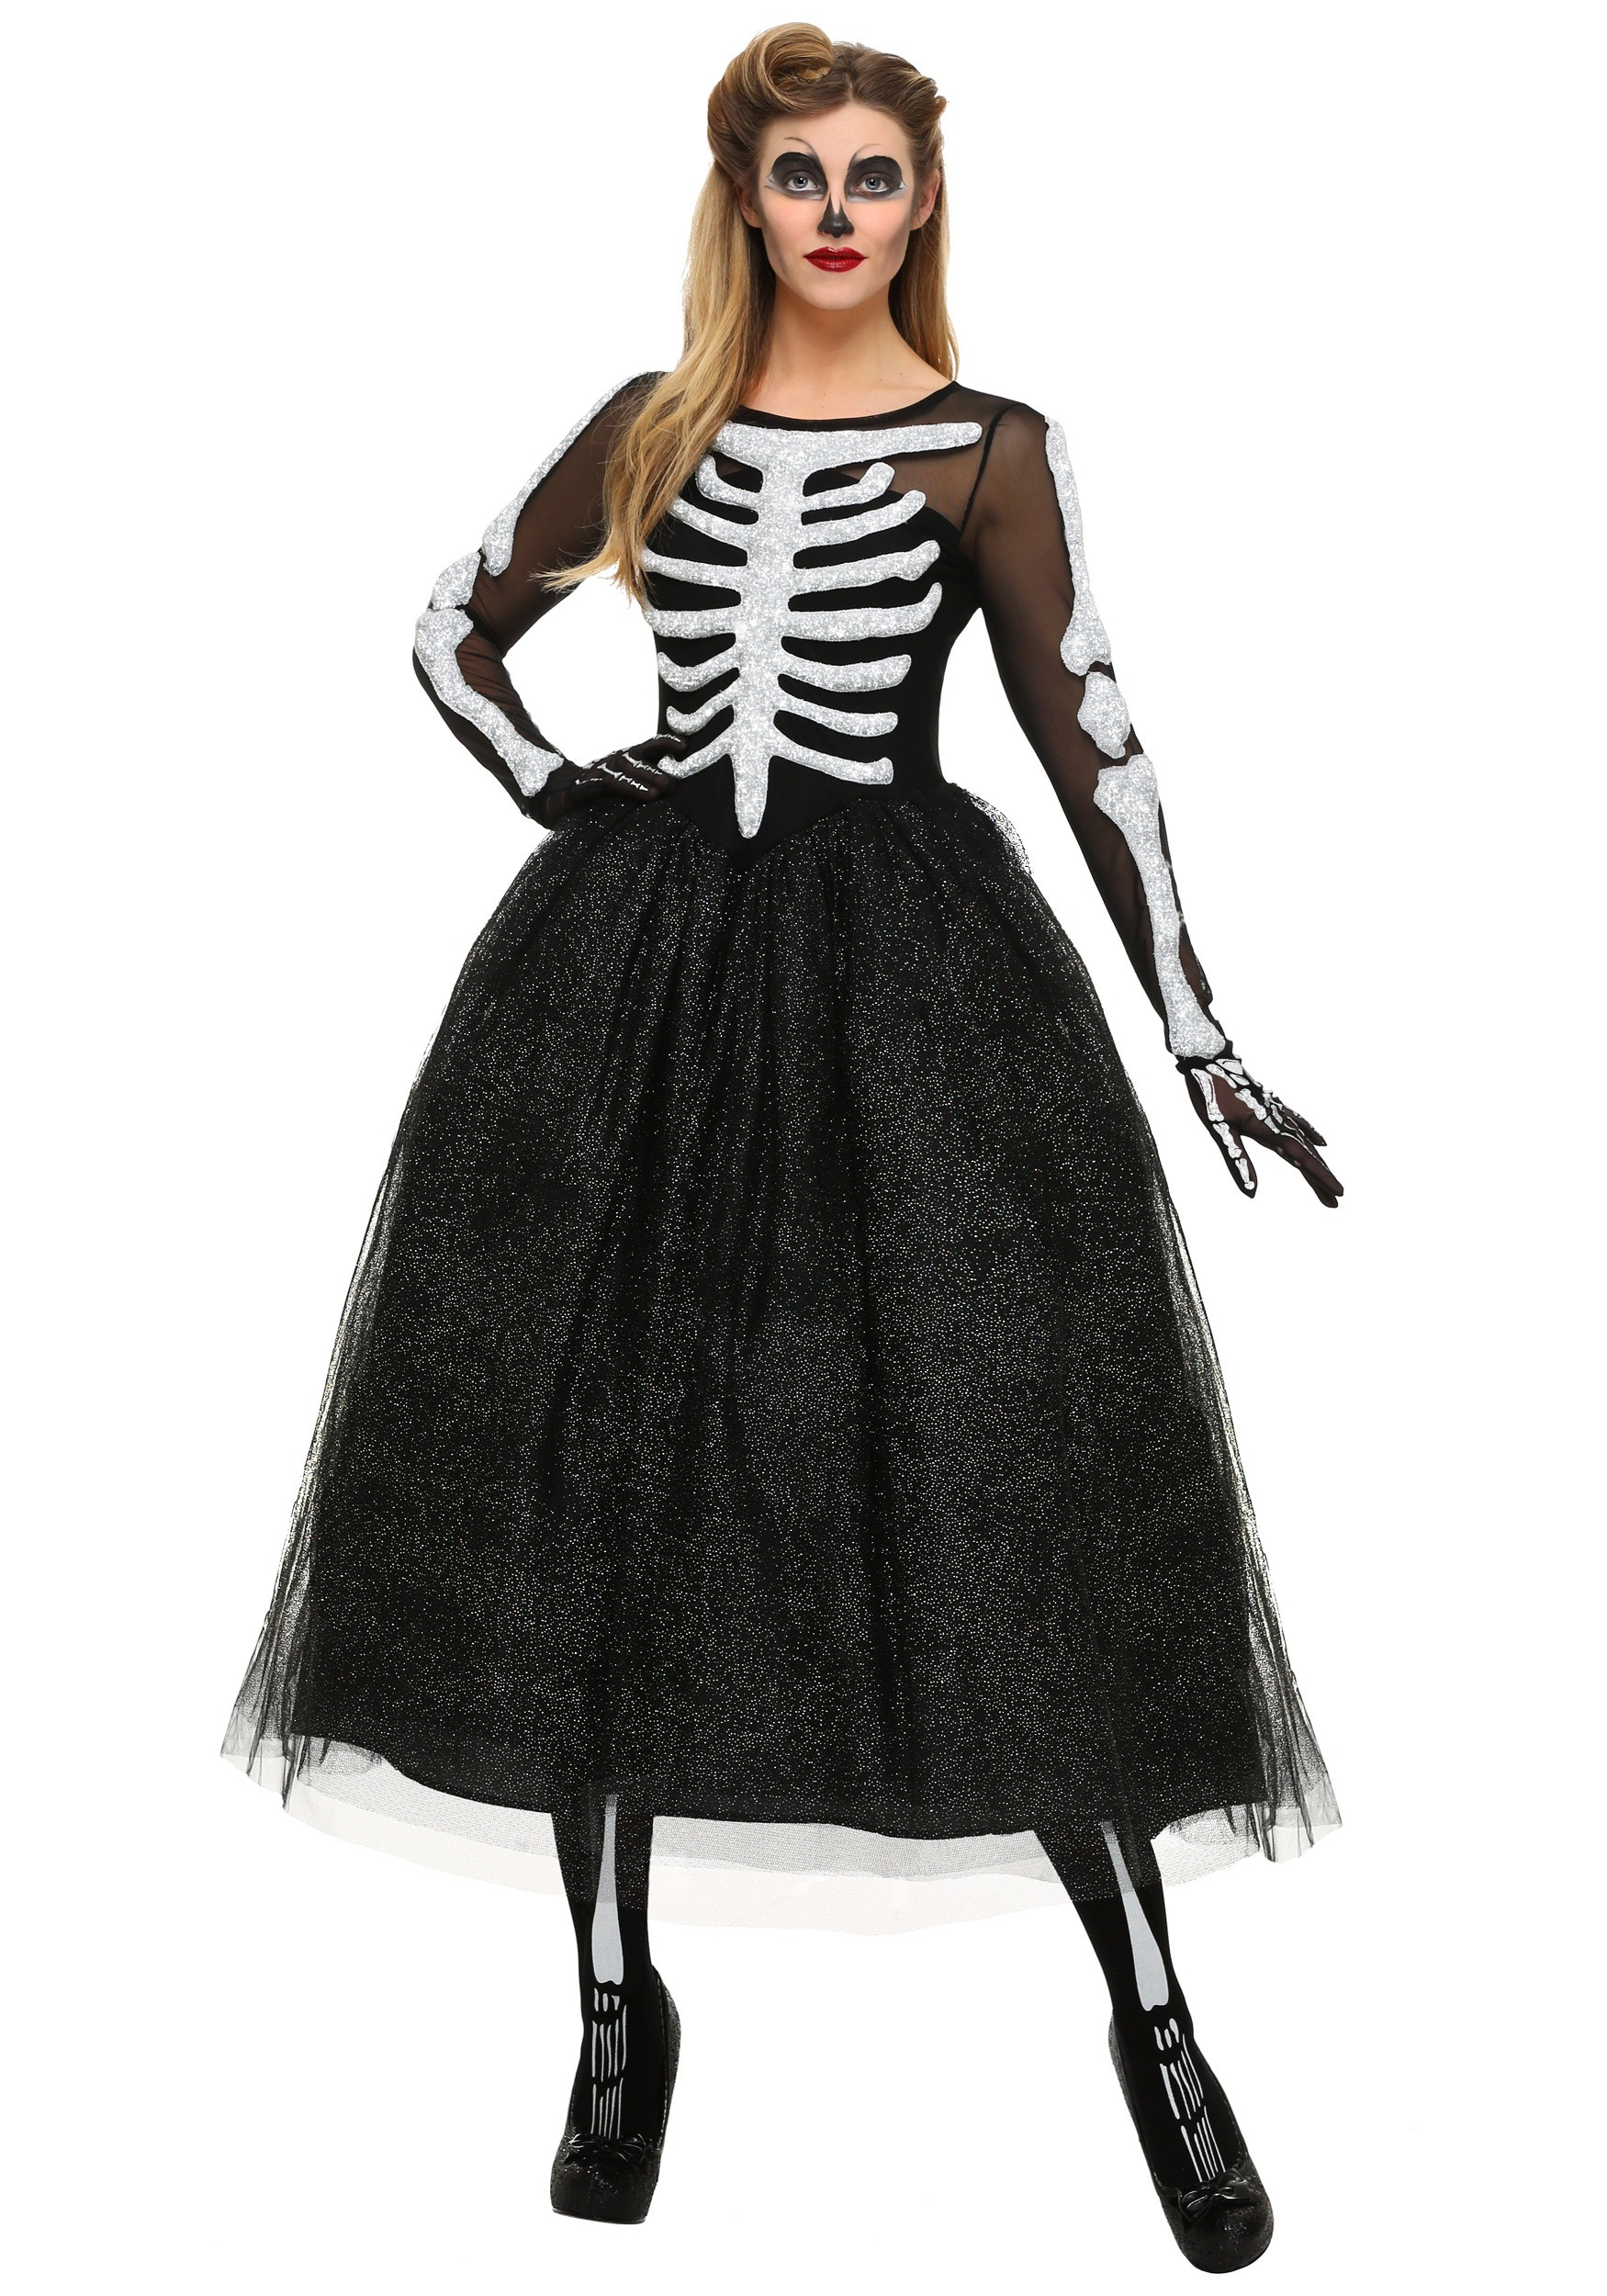 plus size halloween costumes womenu0027s skeleton beauty plus size costume FQHLIWR